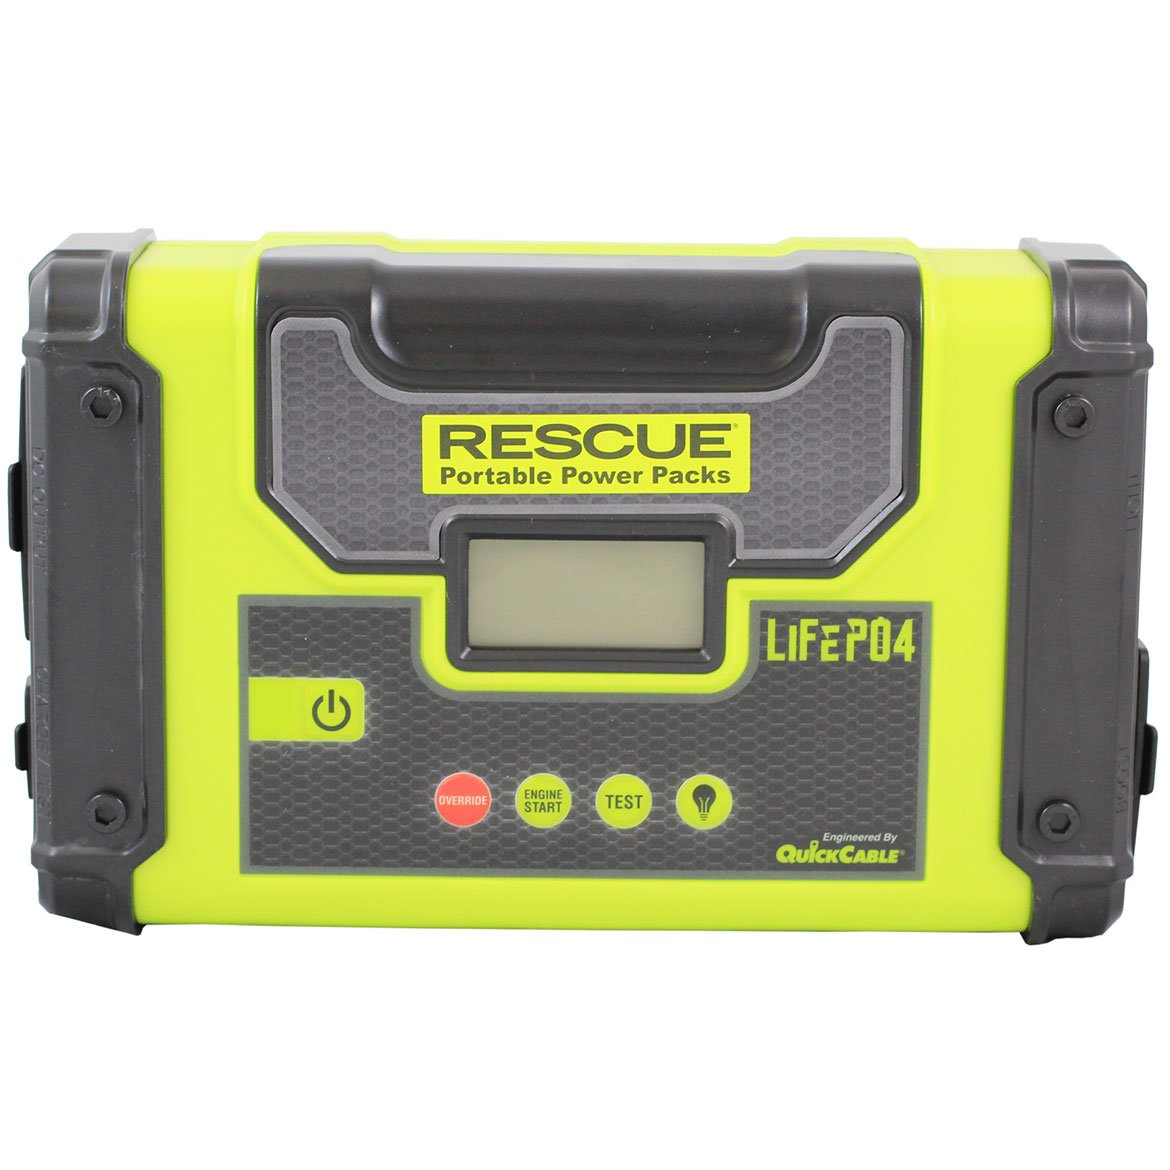 Quickcable Rescue Lifepo4 Jump Starter Portable Power Pack